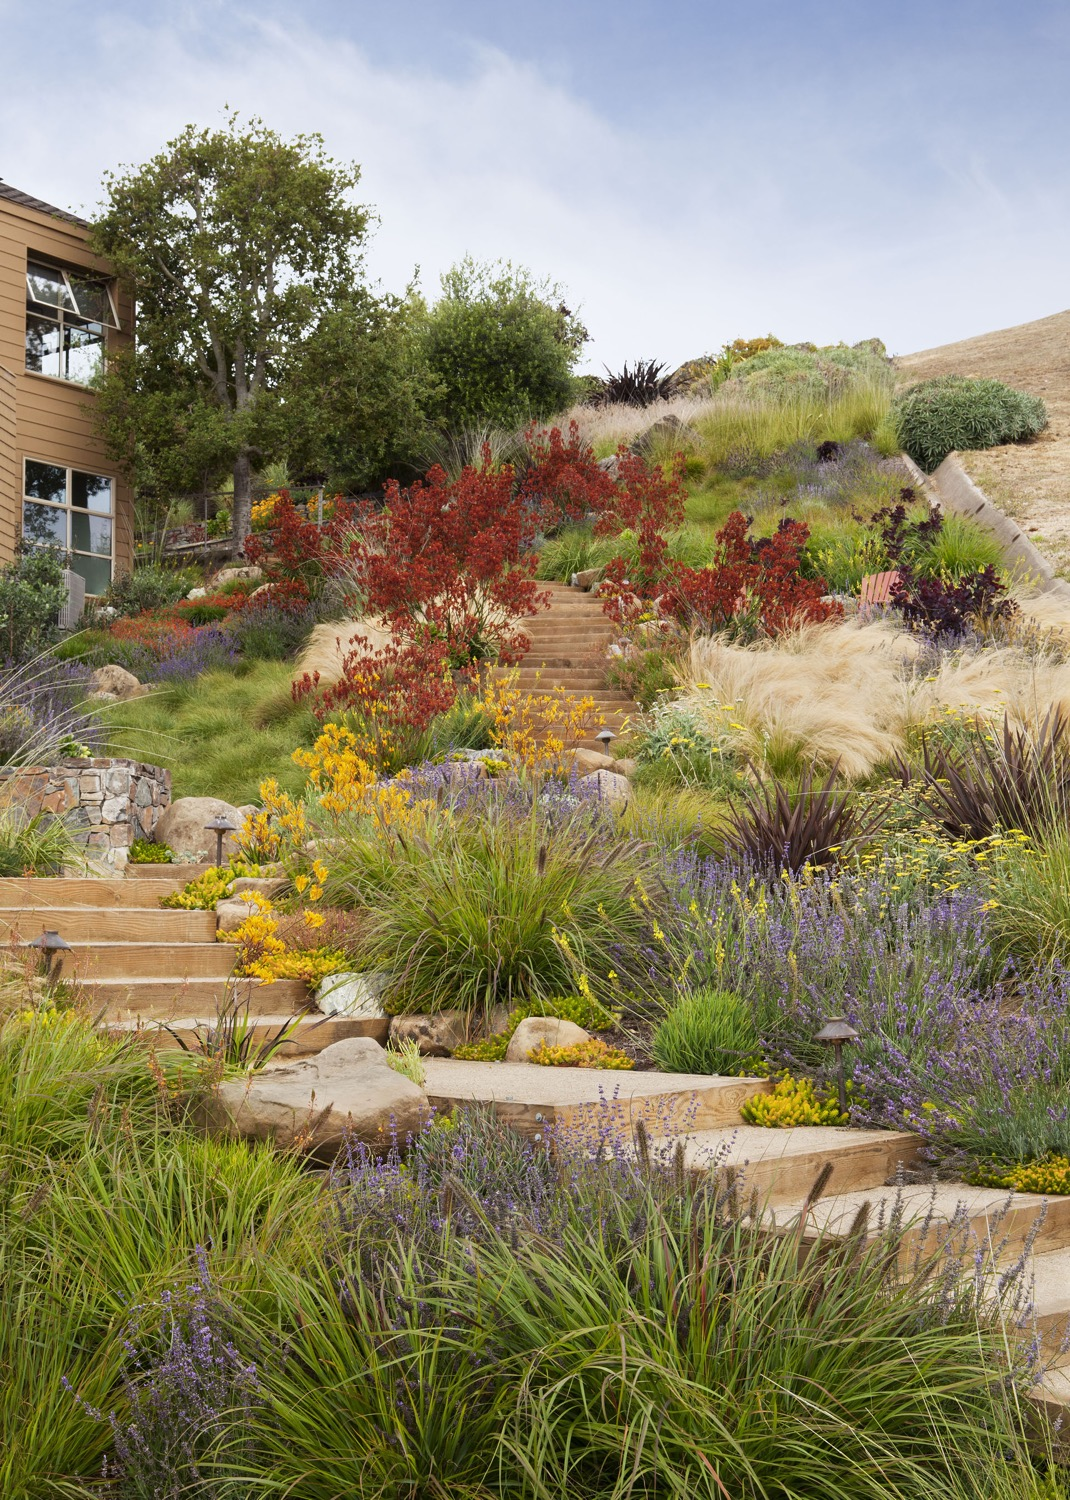 The staircase, seating area and plantings create an enjoyable garden from an unusable, steep slope.